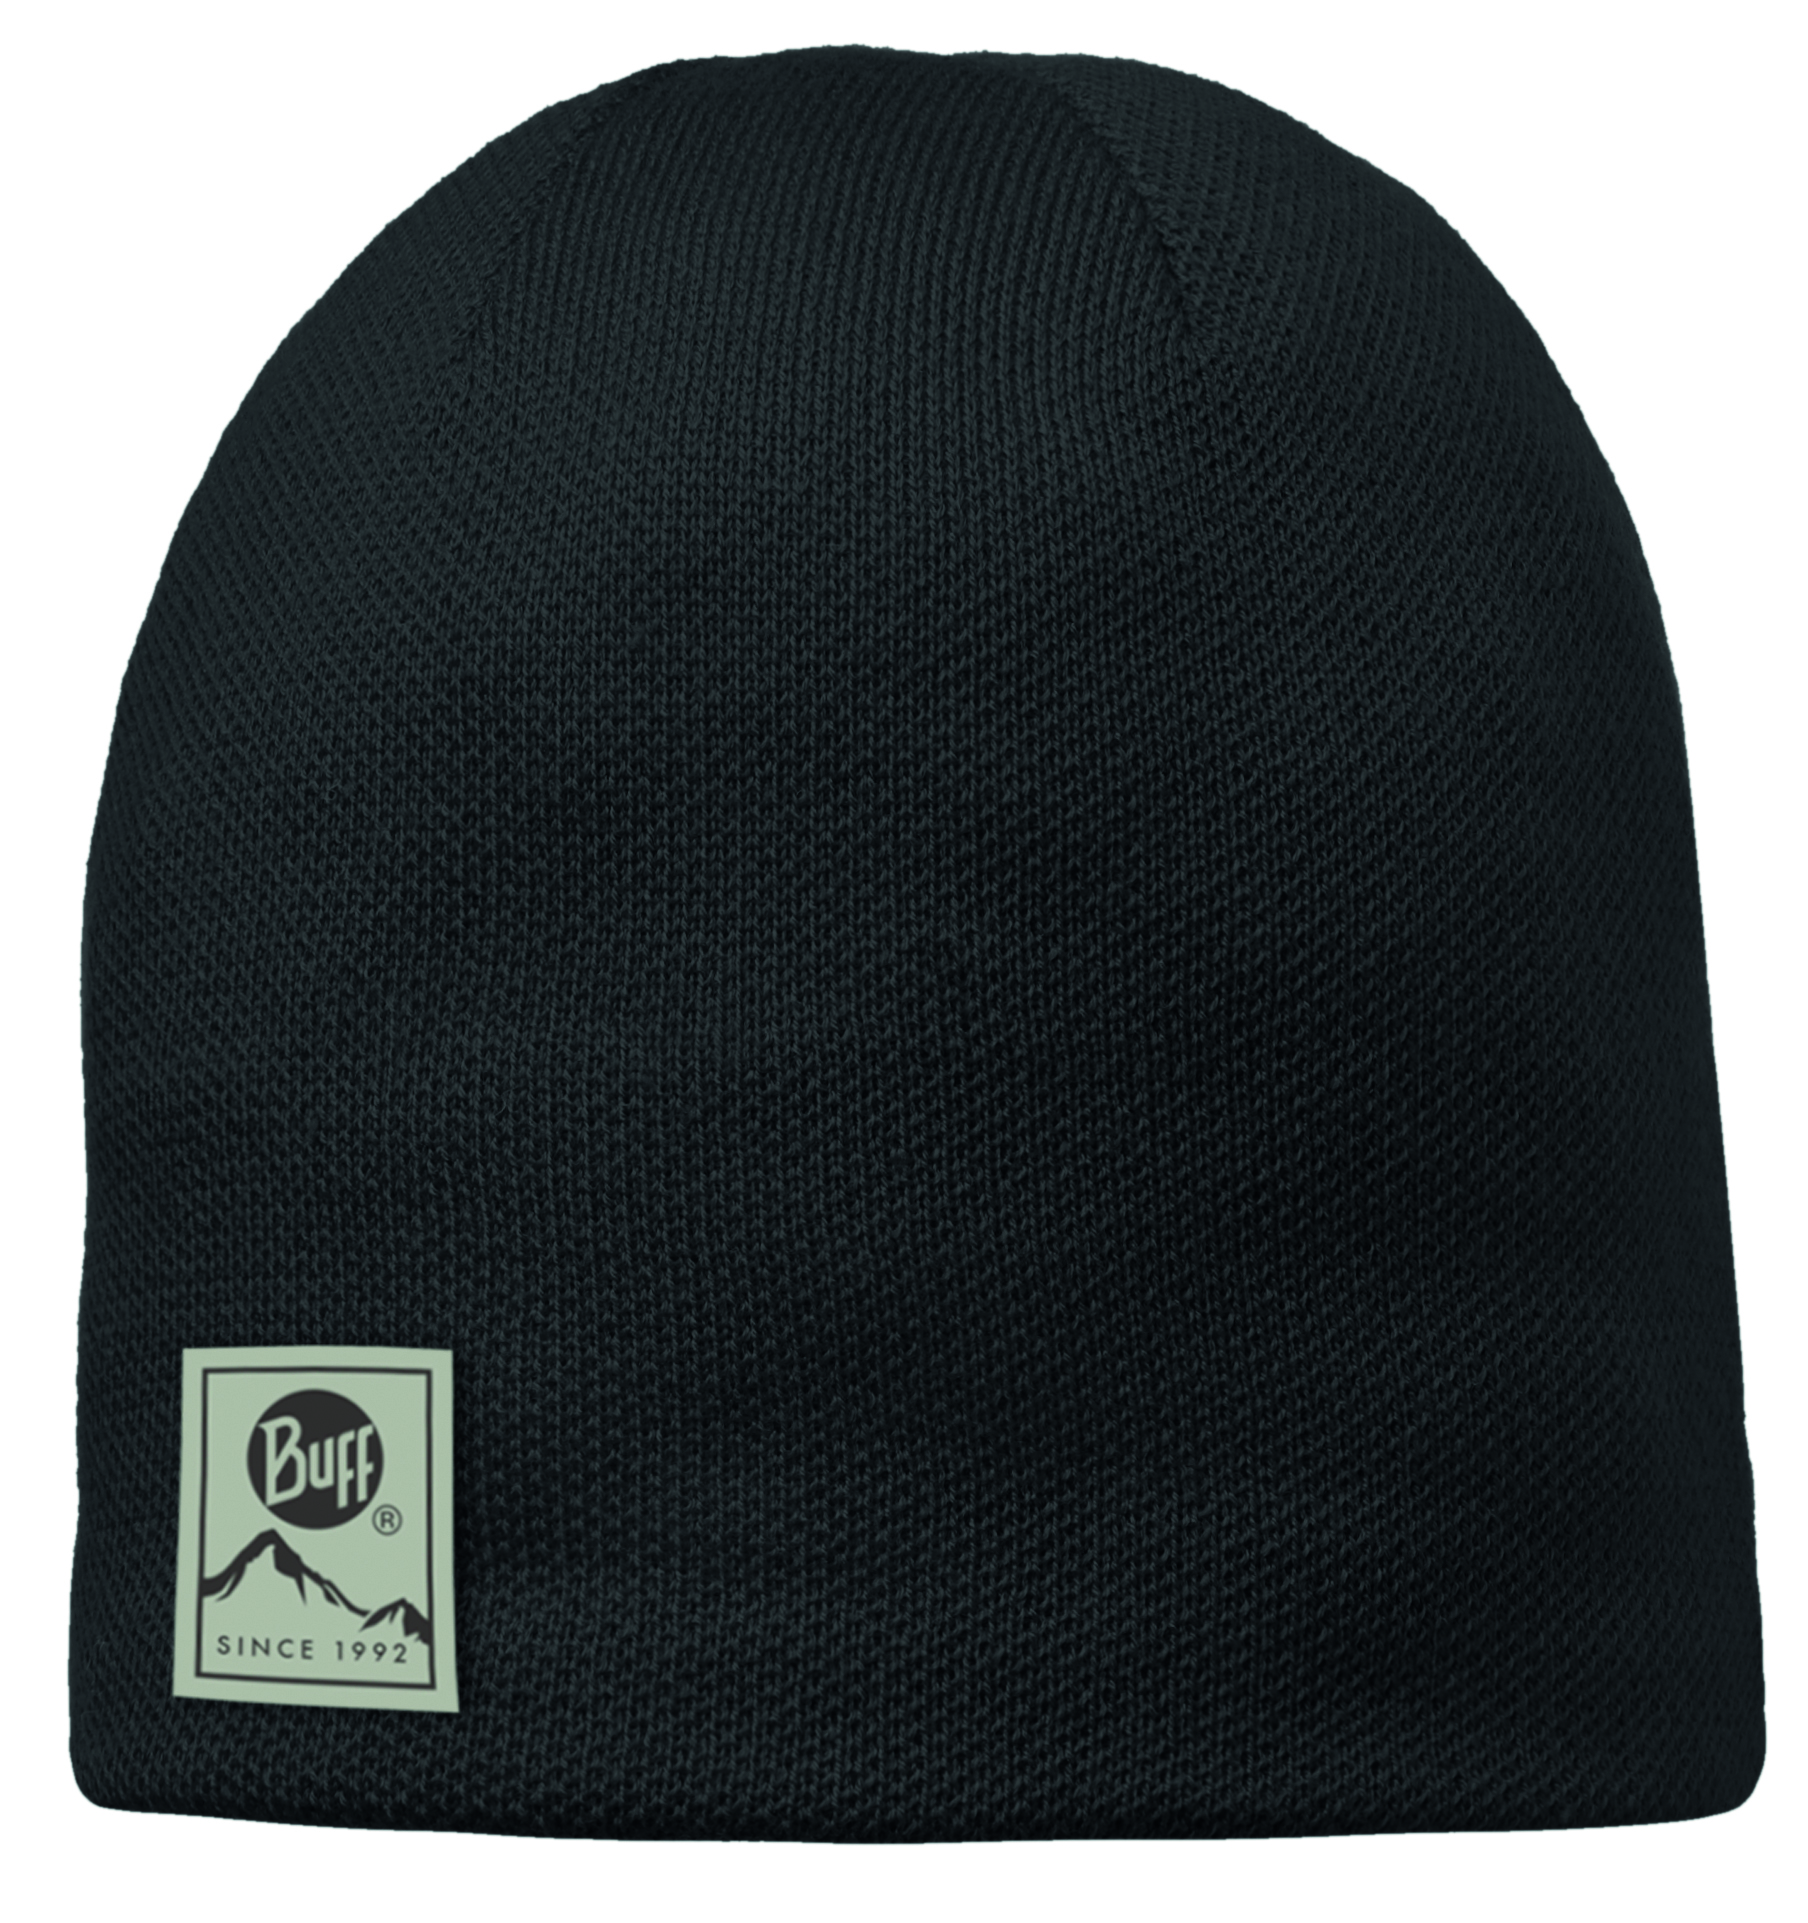 Шапка BUFF 2015-16 KNITTED HATS BUFF SOLID BLACK